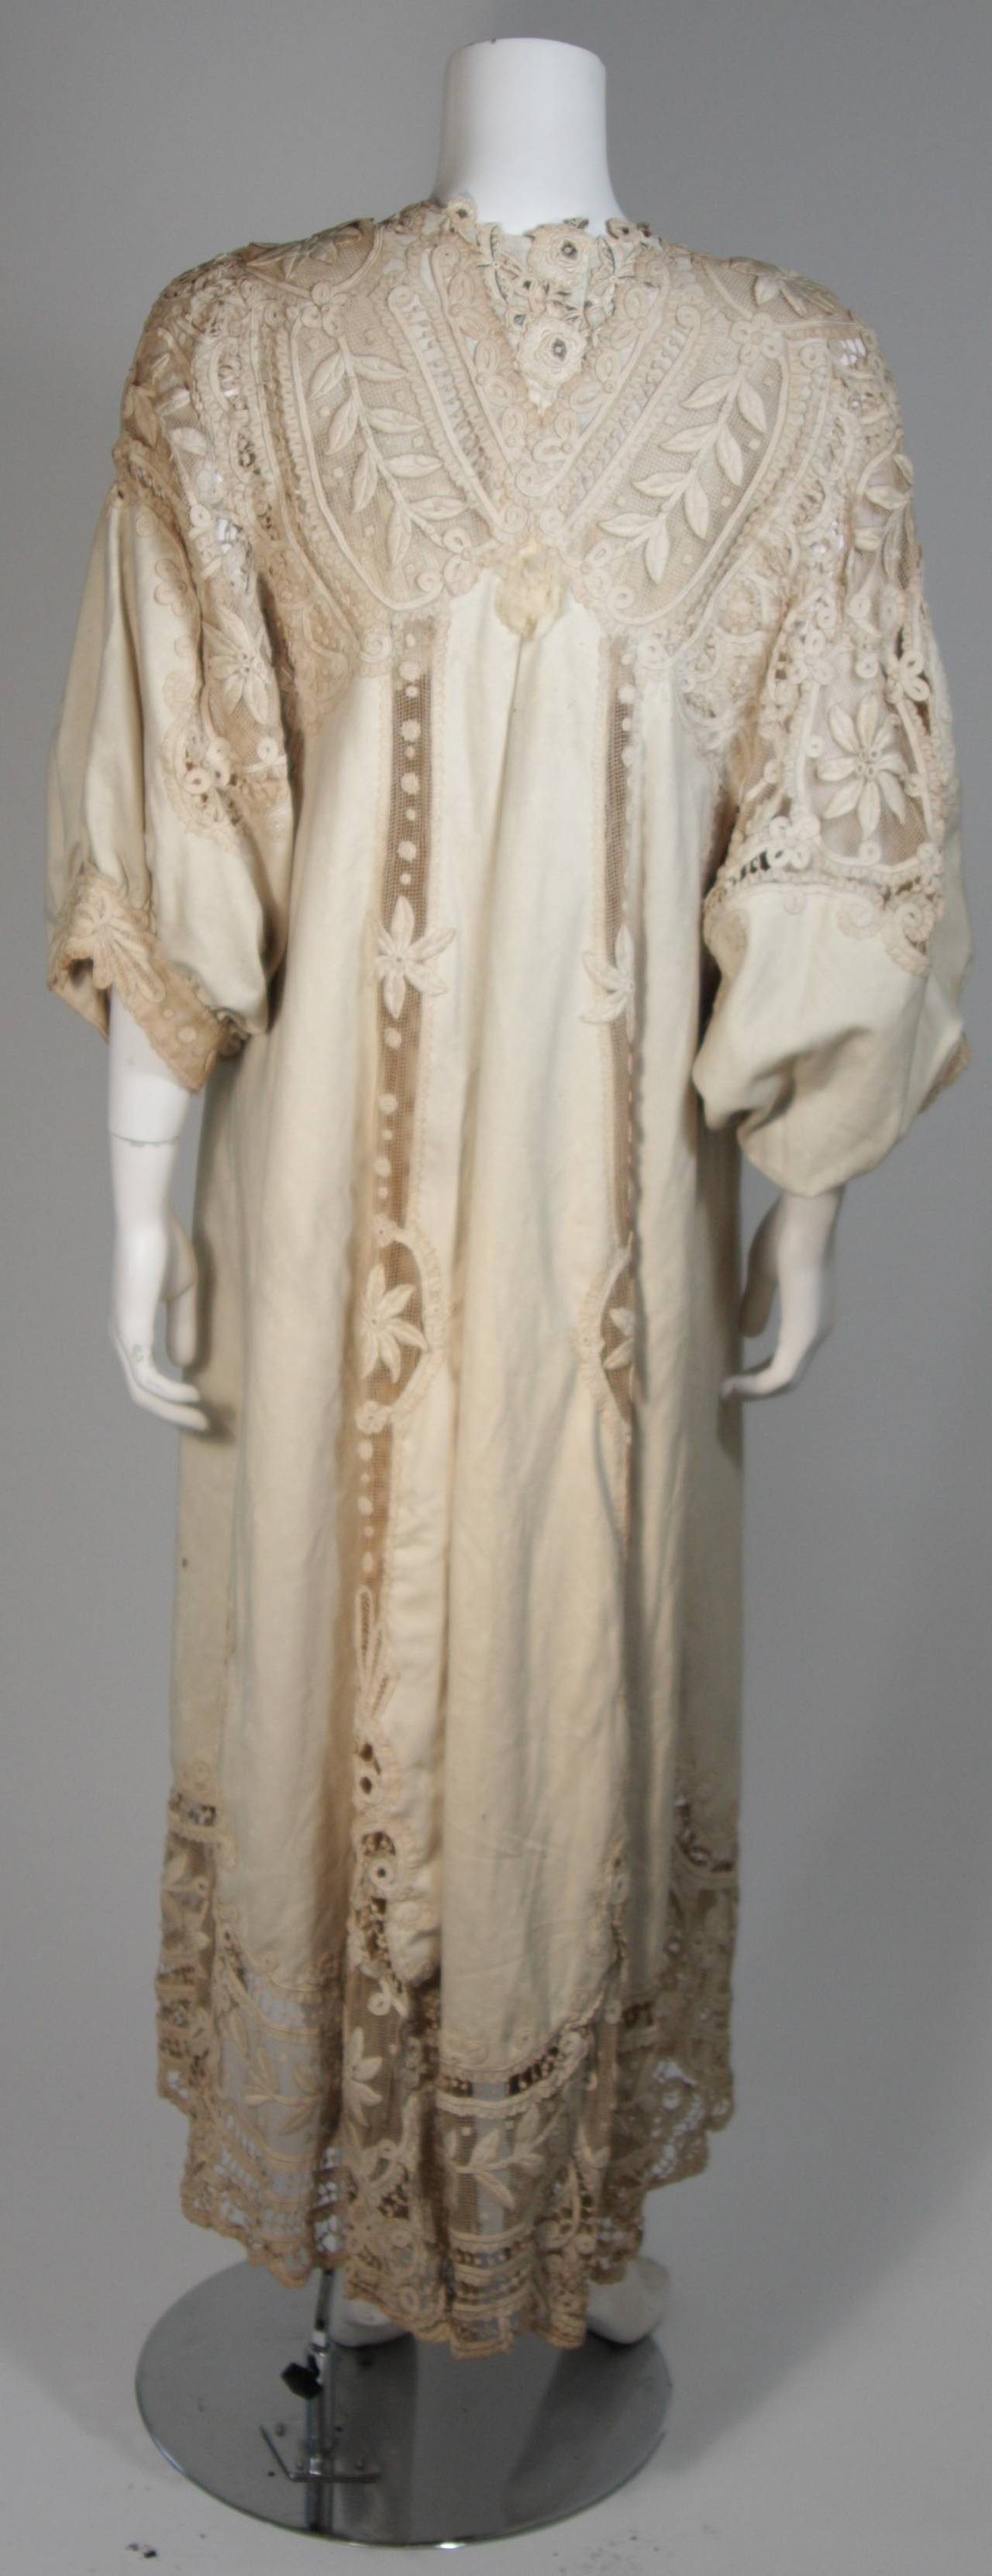 Antique Lace Coat with Bell Sleeve Detail For Sale 2